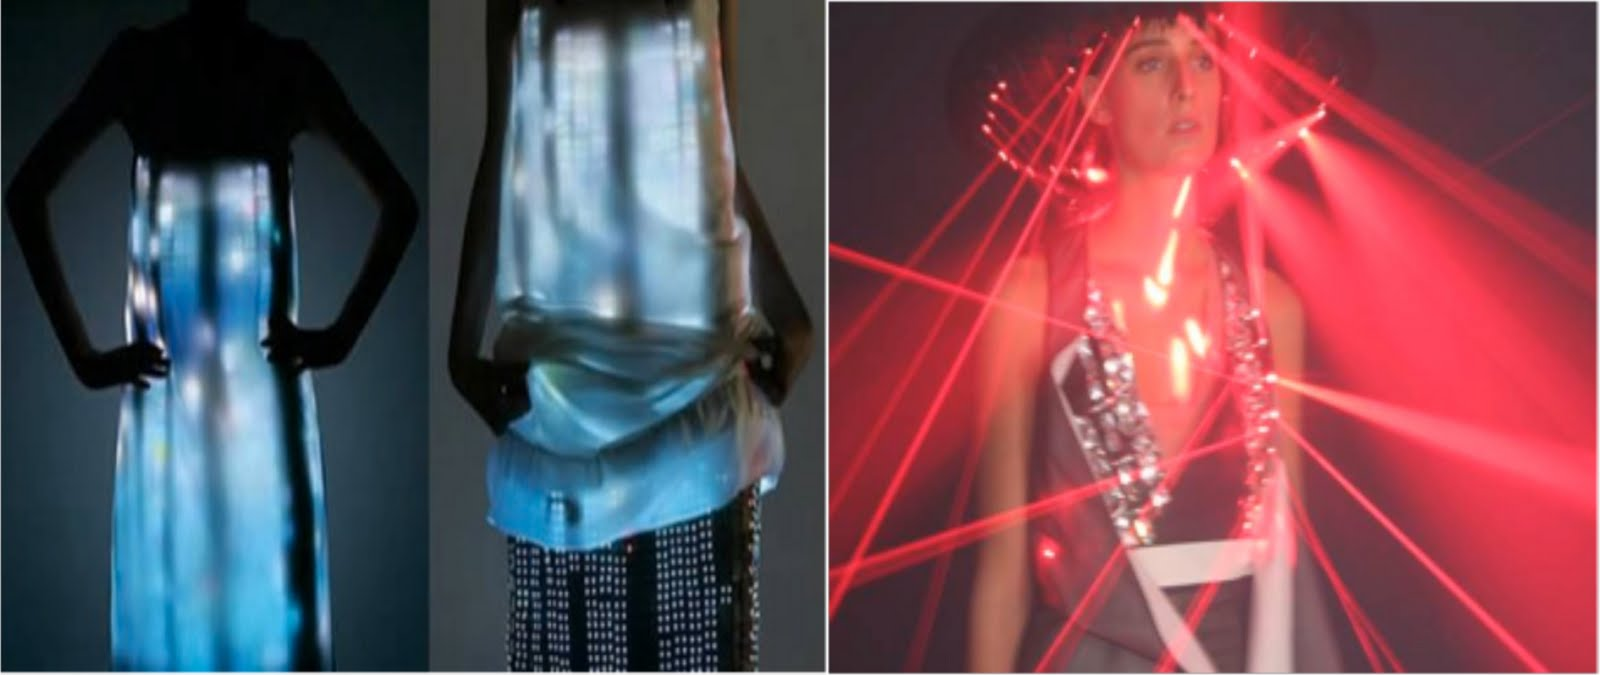 Monishas Ideas Vault April 2011 Mannequin Costume Lighting And Wearable Electronics Another Person Who Uses Lights As Technology Is Hussein Chalayan A Famous Fashion Designer Thinks Out Of The Box With His Work